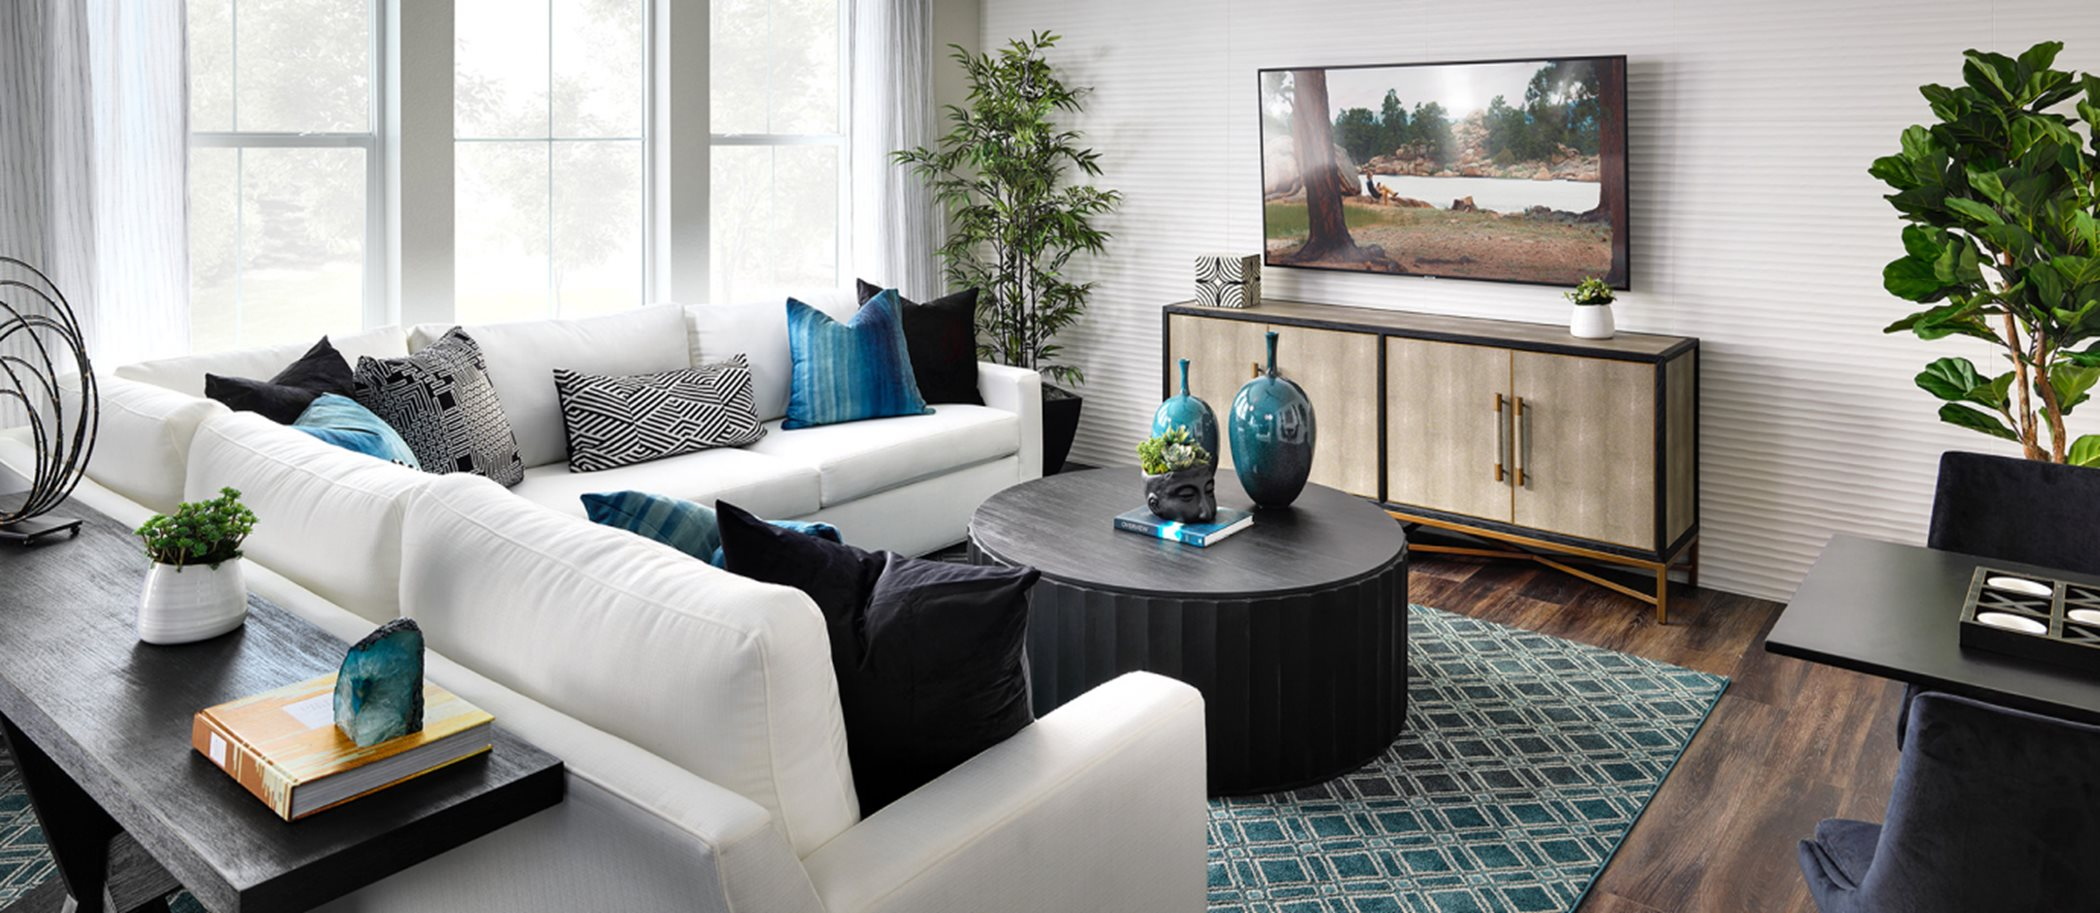 The Monarch Collection at Willow Bend Chelton Living